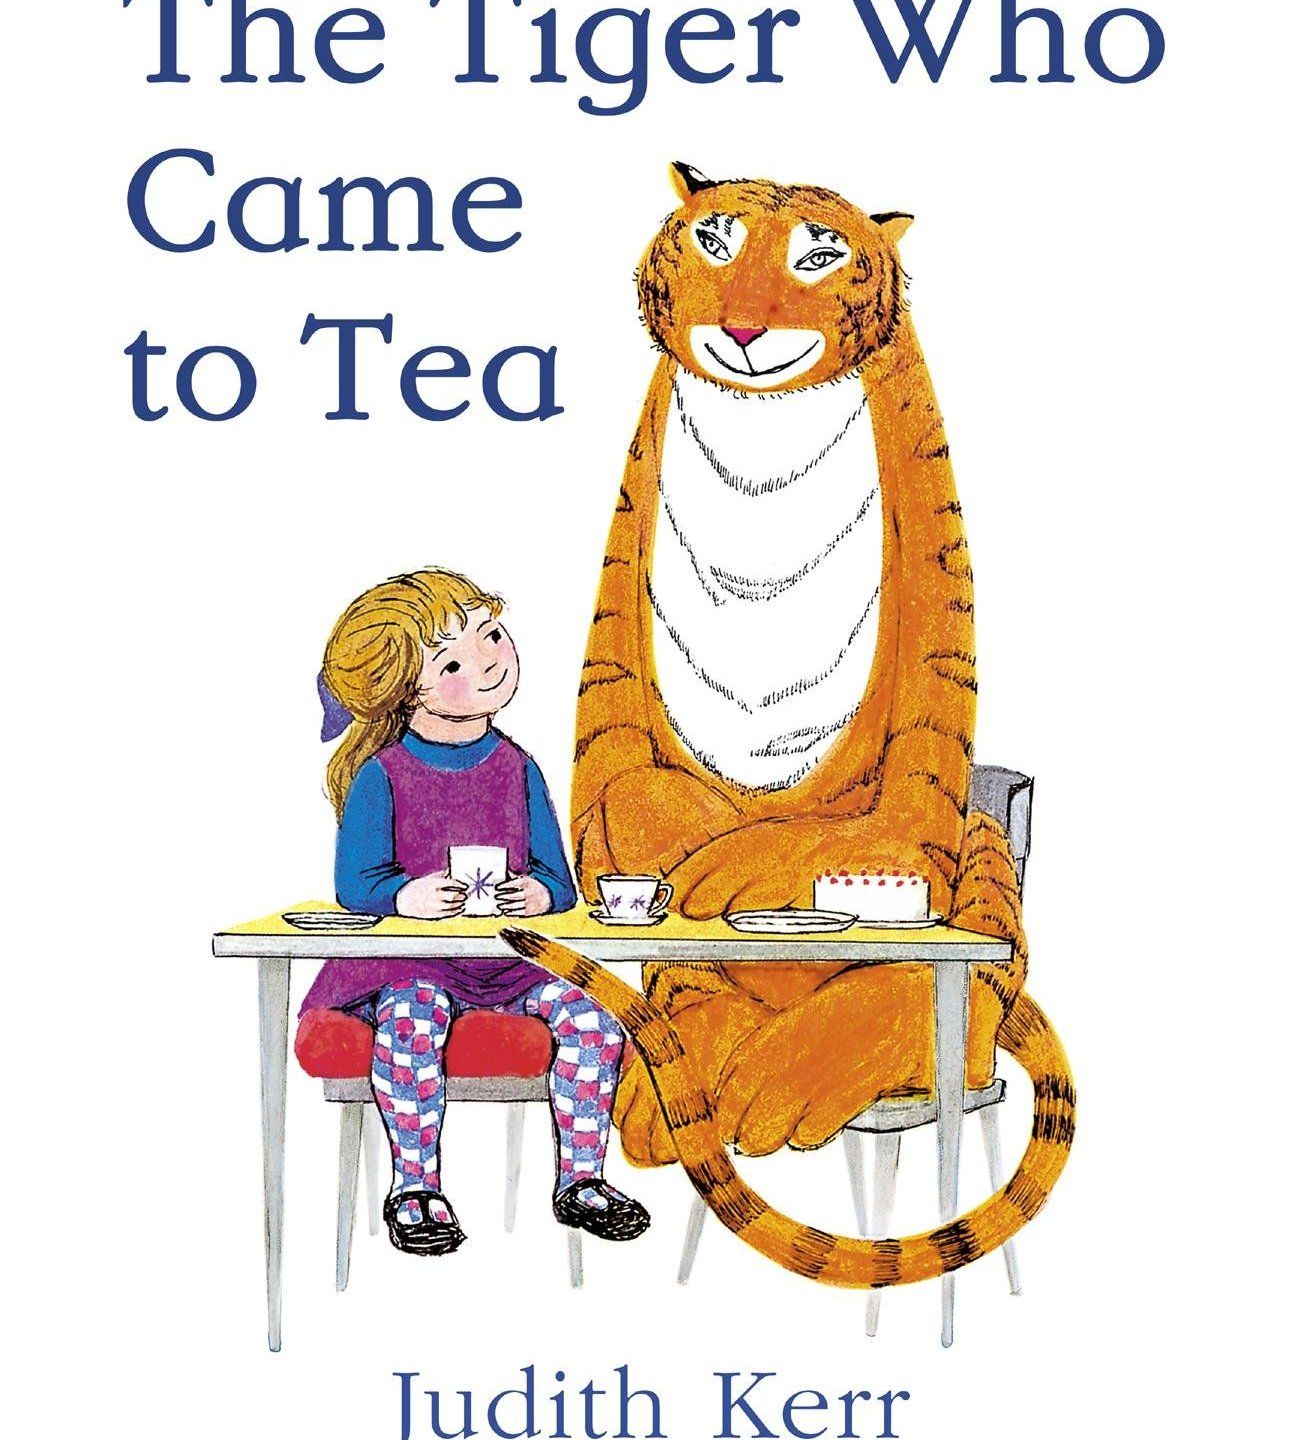 The Tiger Who Came to Tea – Judith Kerr